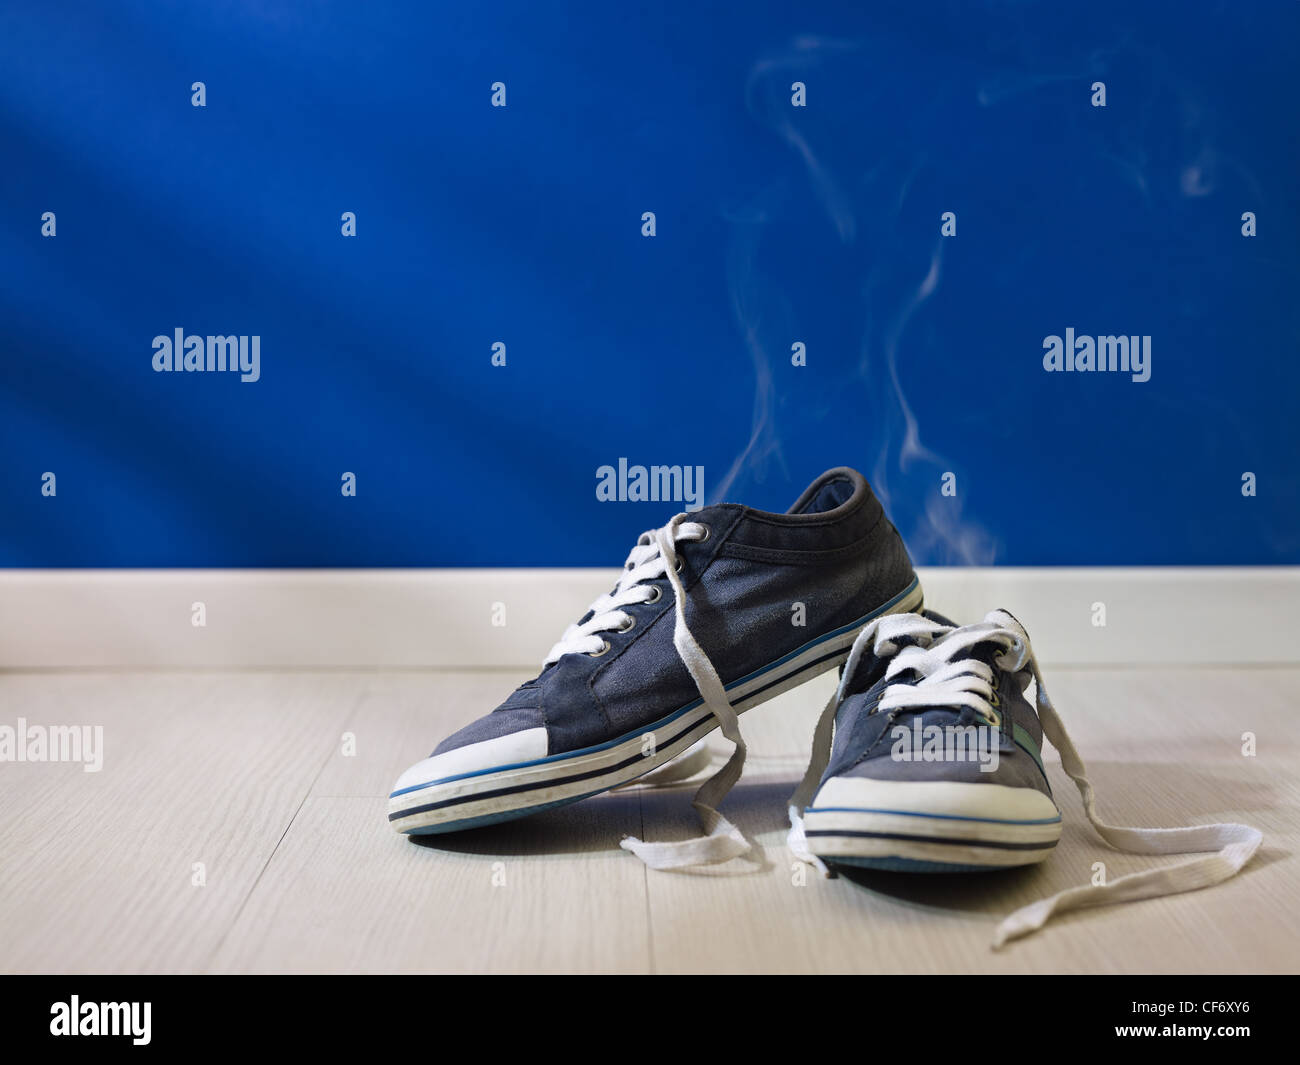 concept shot of feet perspiration: bad smell coming out from old and dirty shoes - Stock Image